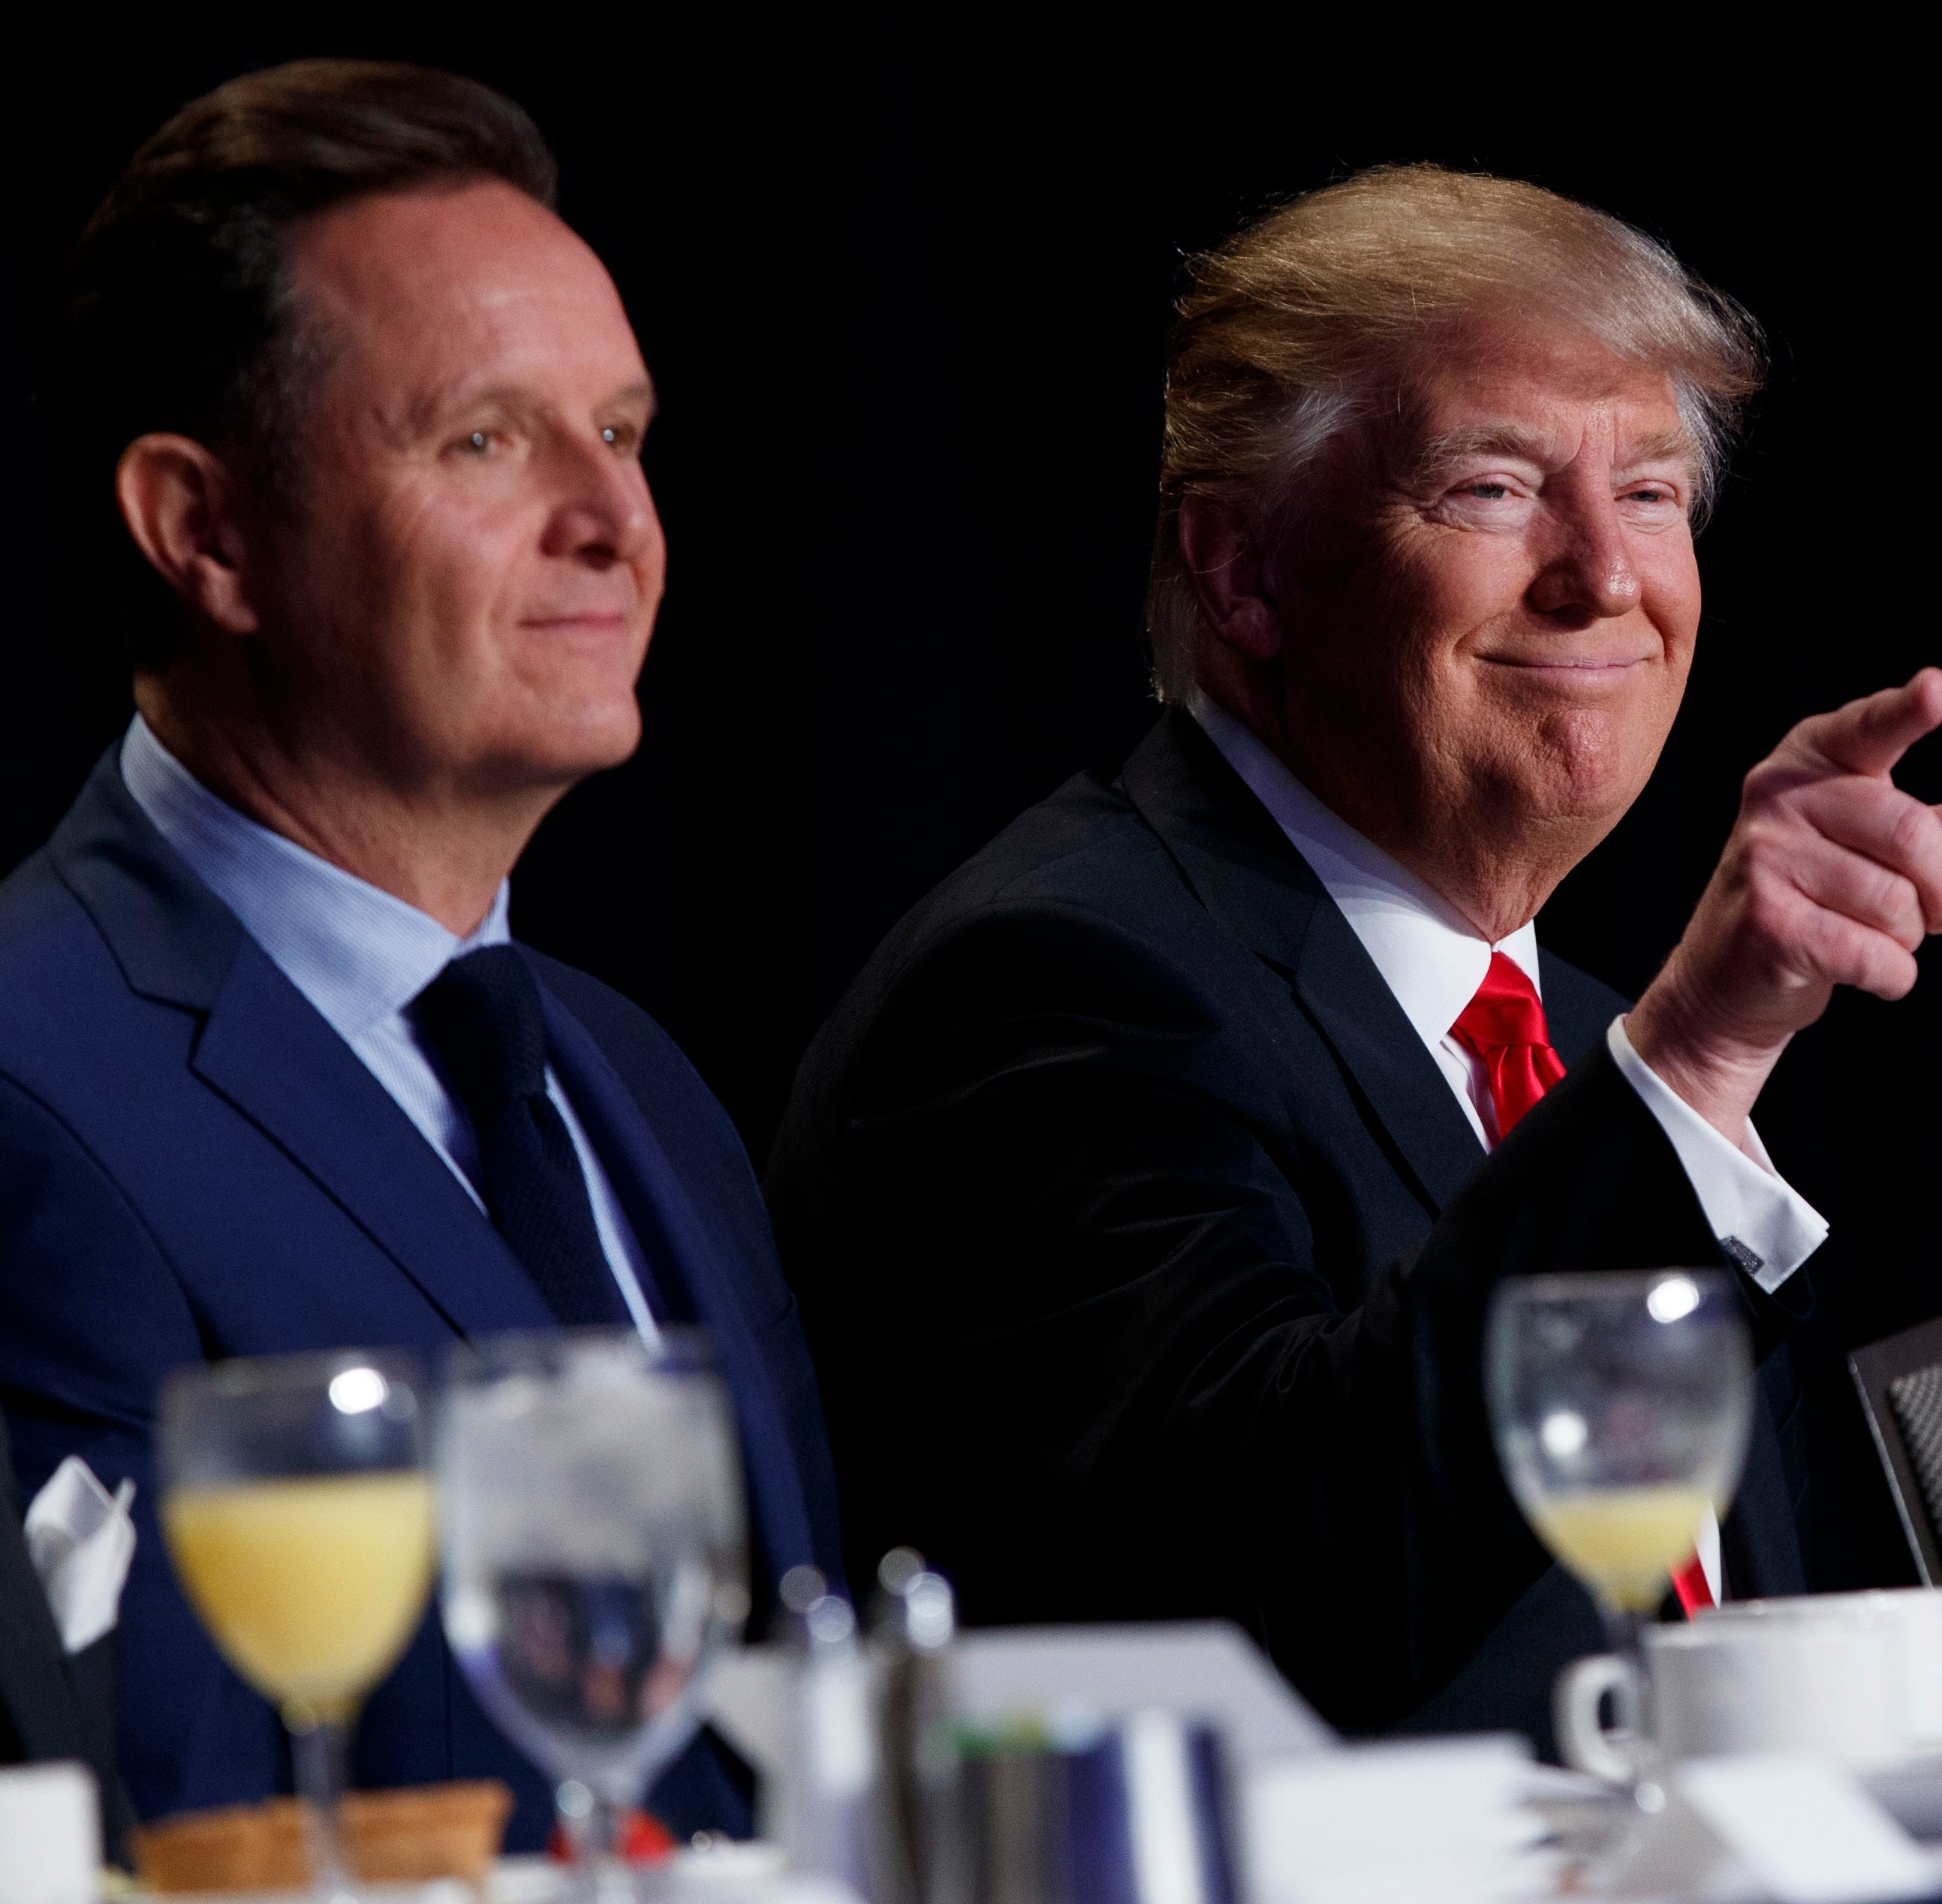 Television producer Mark Burnett sits next to President Donal Trump at the National Prayer Breakfast in 2017.